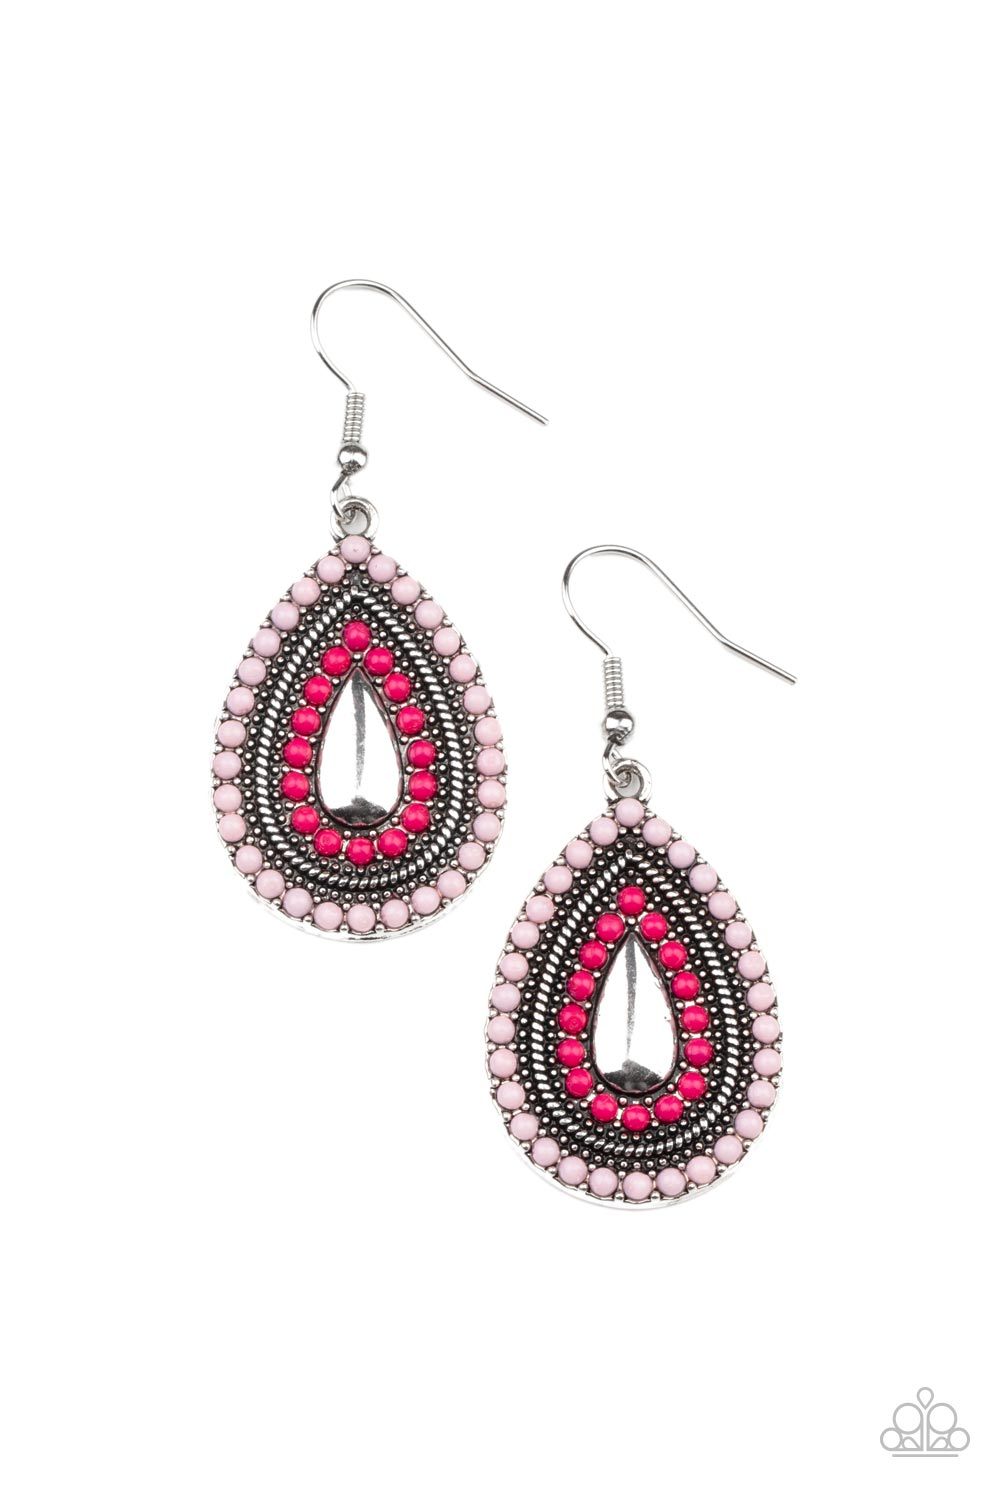 five-dollar-jewelry-pink-earring-20-41020-paparazzi-accessories